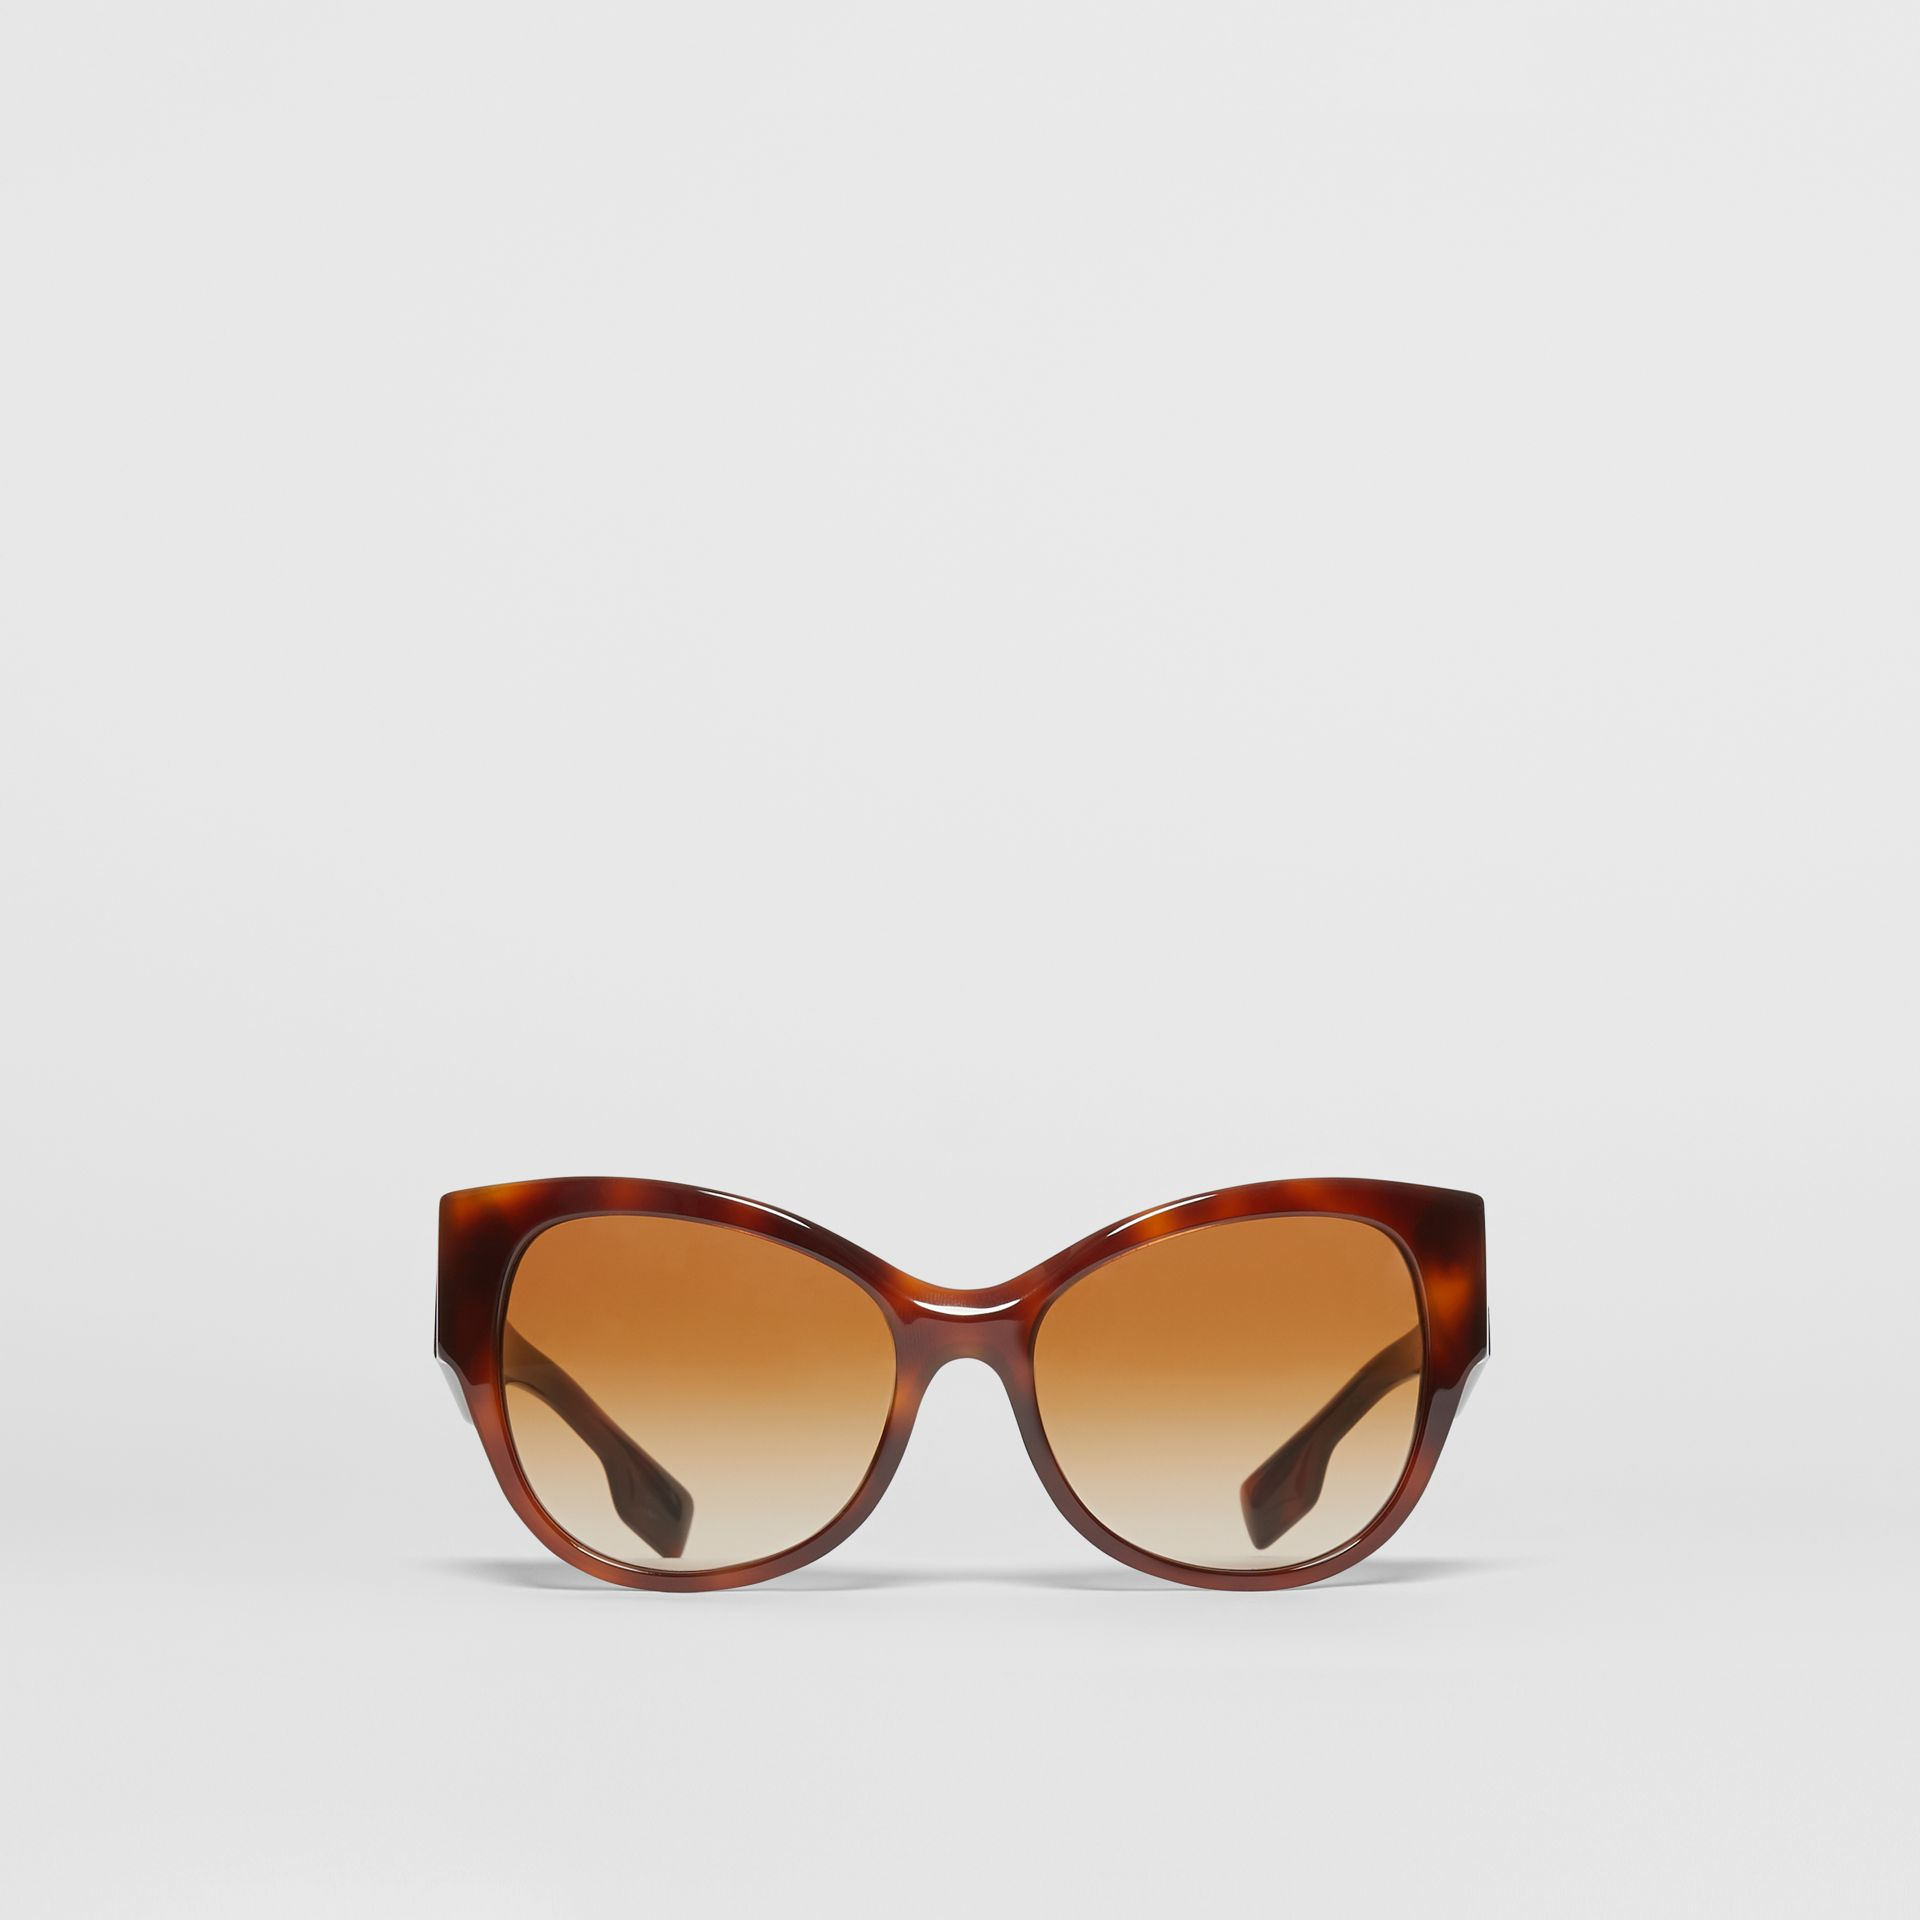 Butterfly Frame Sunglasses in Amber Tortoiseshell - Women | Burberry - gallery image 0